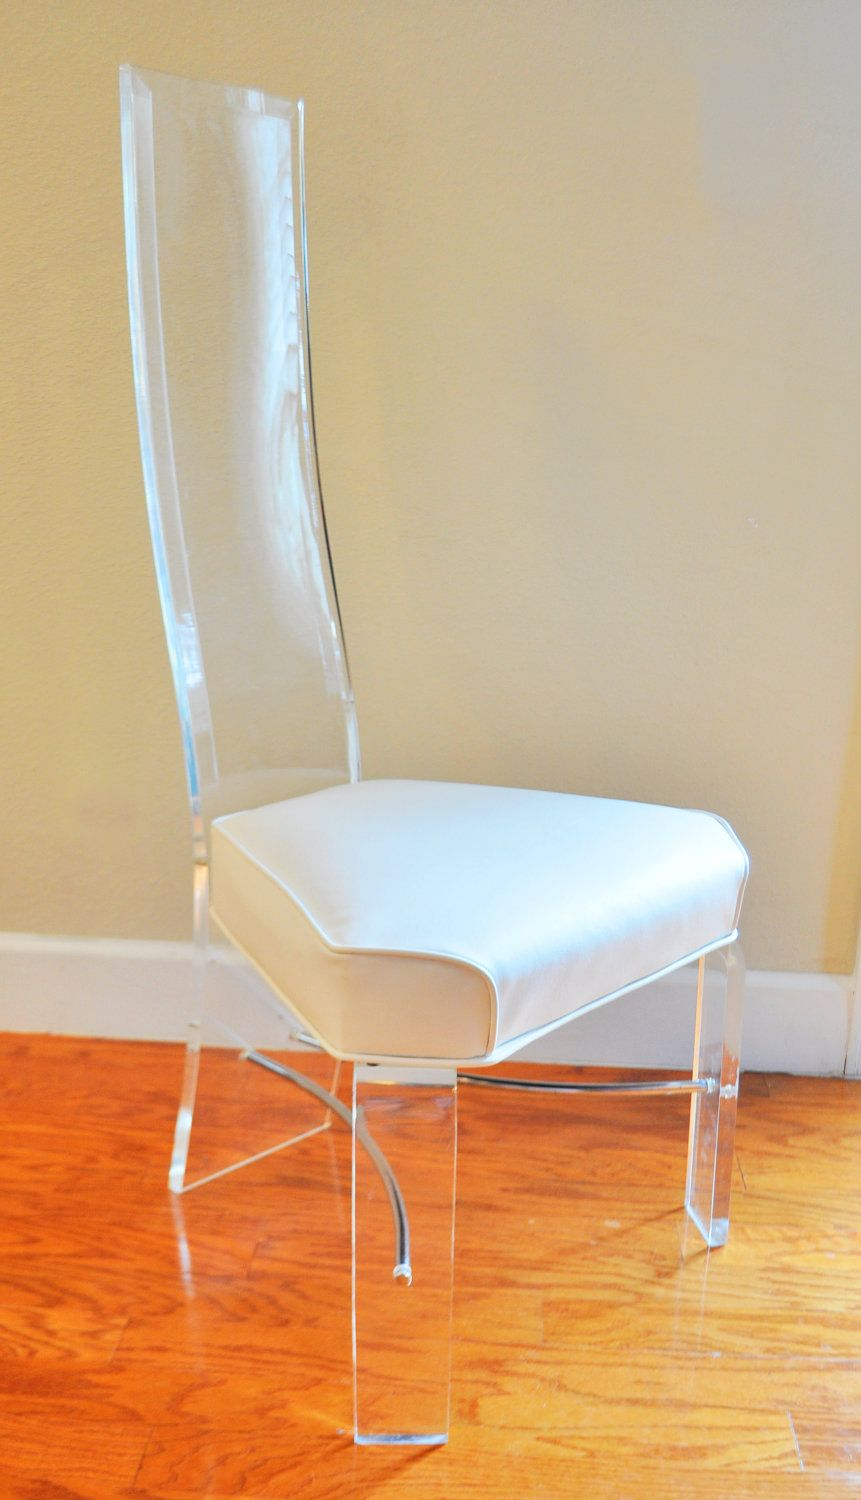 high back, lucite chairs circa 1970's